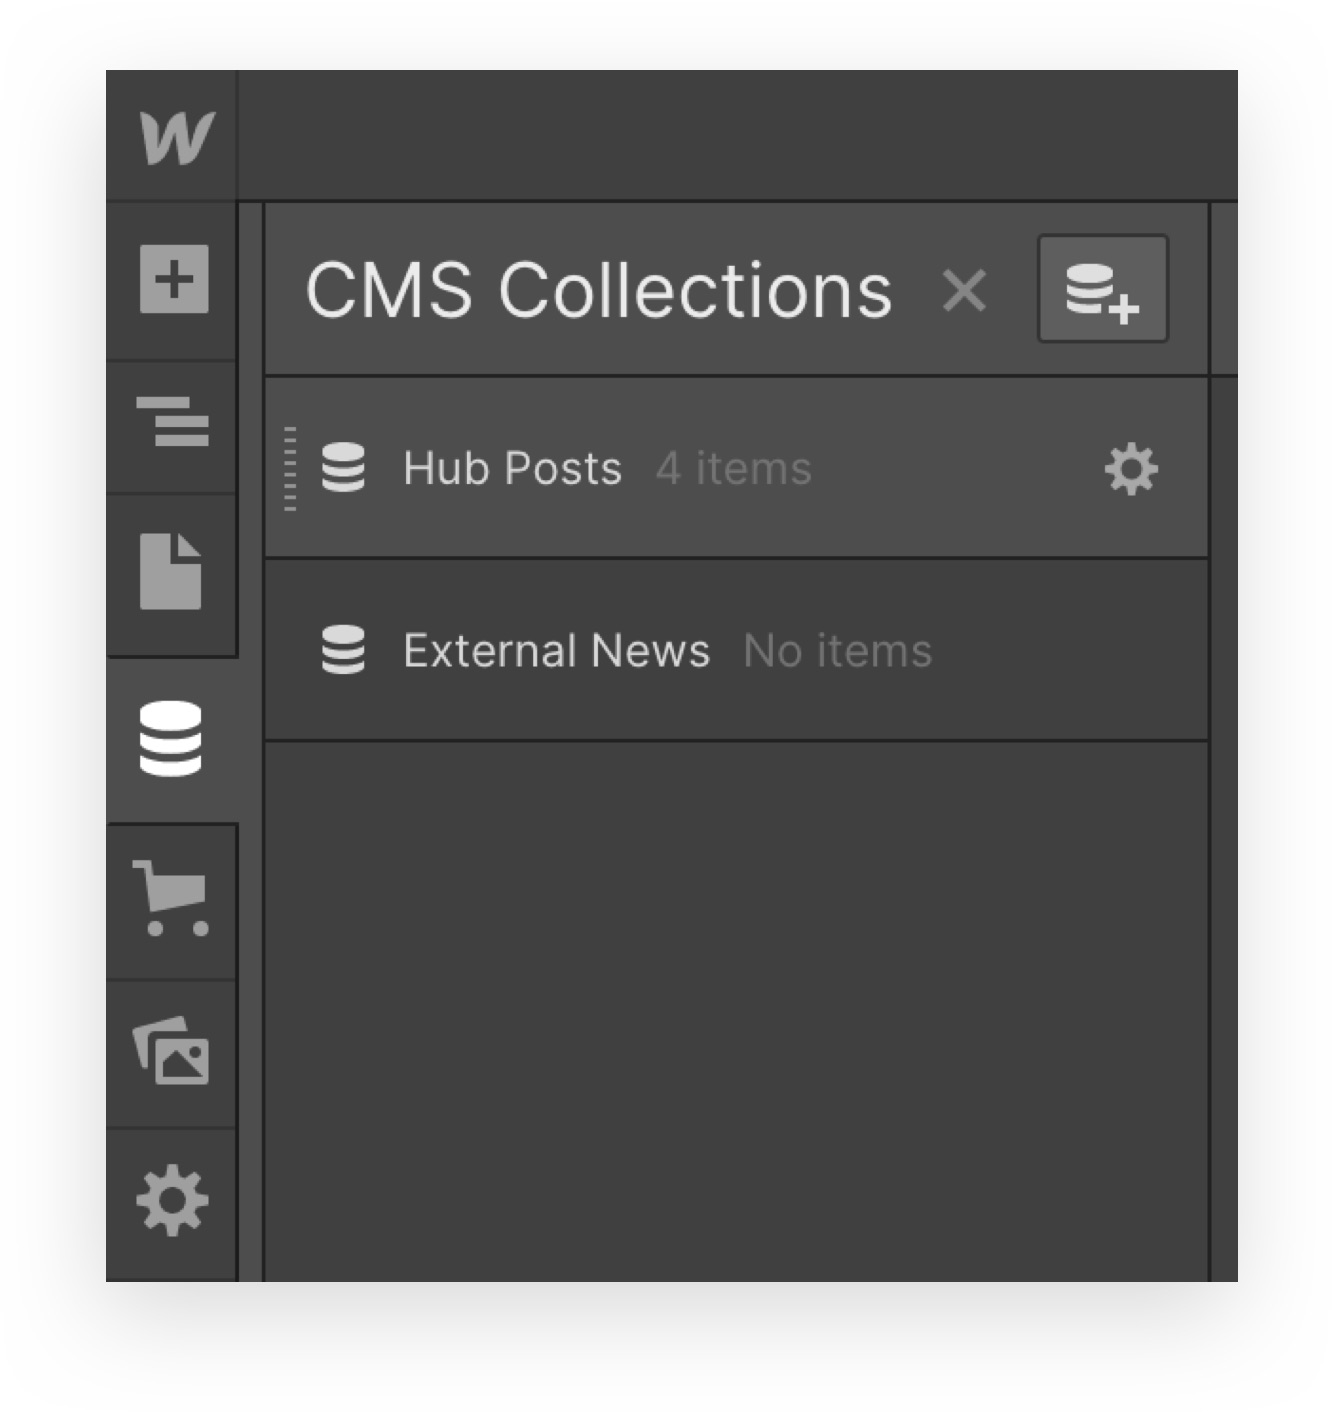 Example of current CMS collection called hub posts